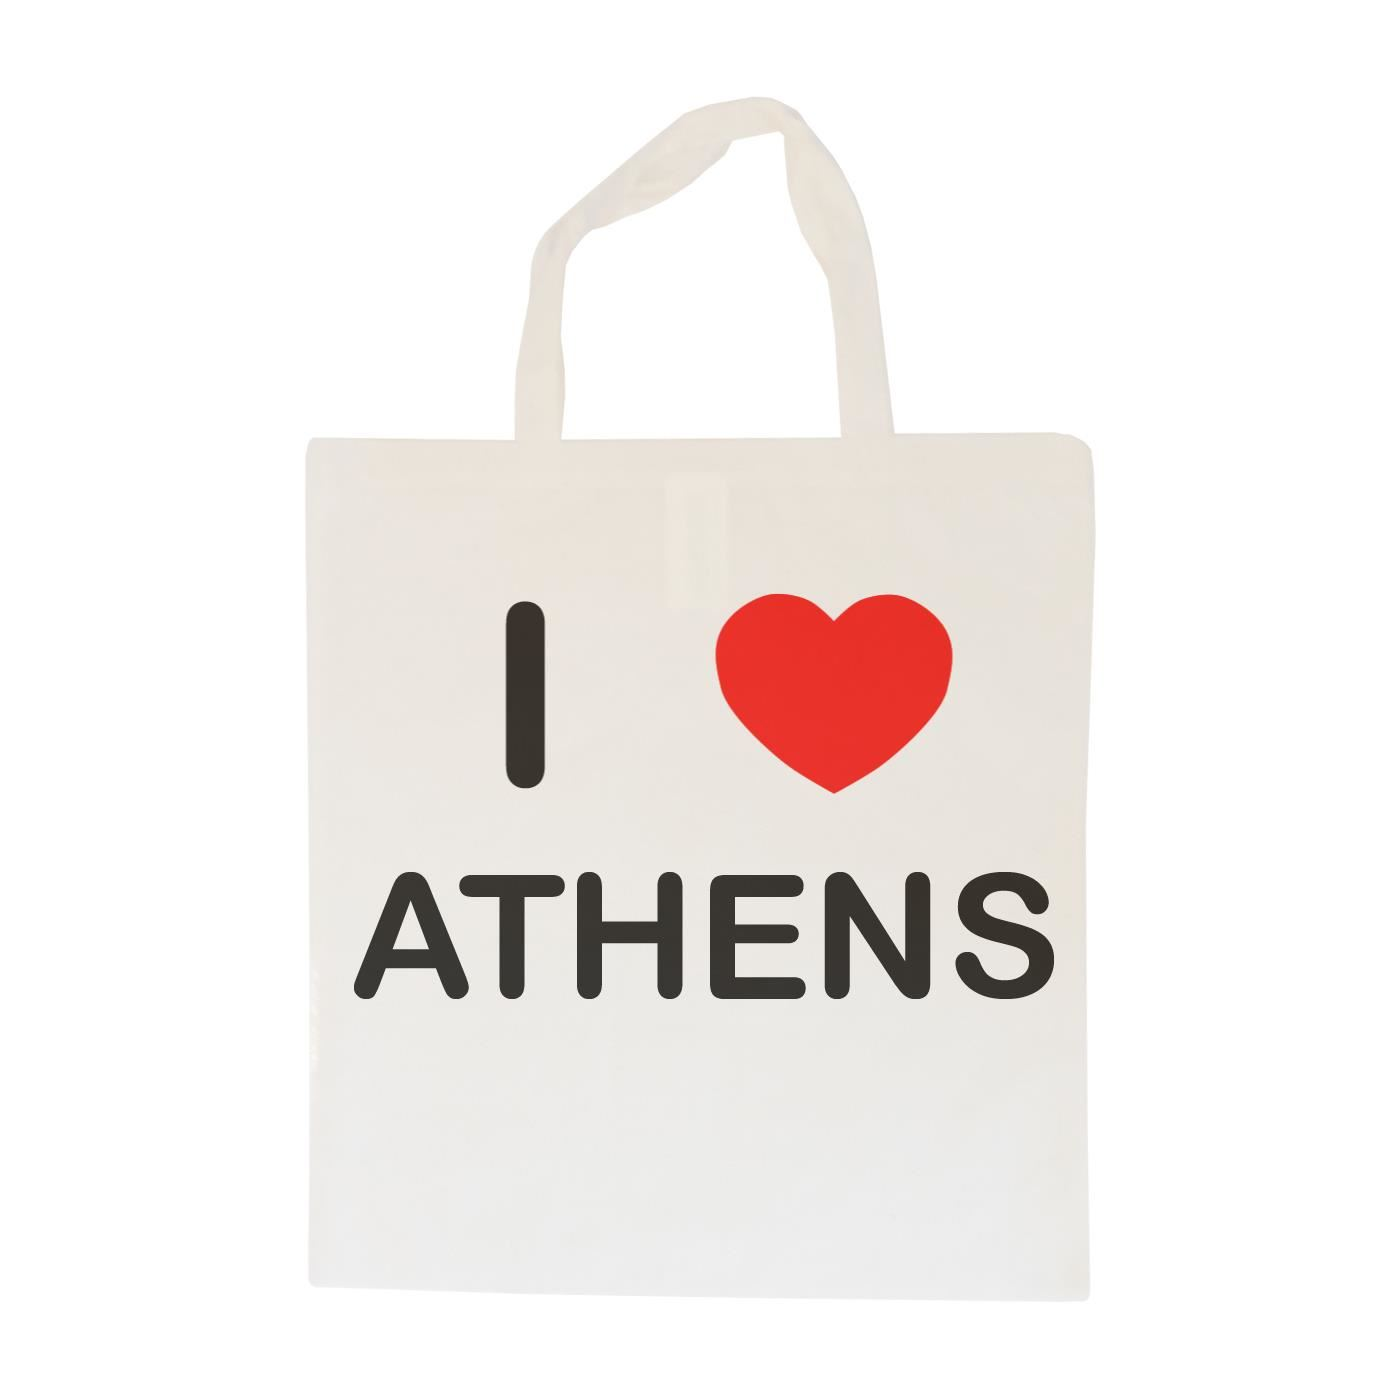 I Love Athens - Cotton Bag | Size choice Tote, Shopper or Sling